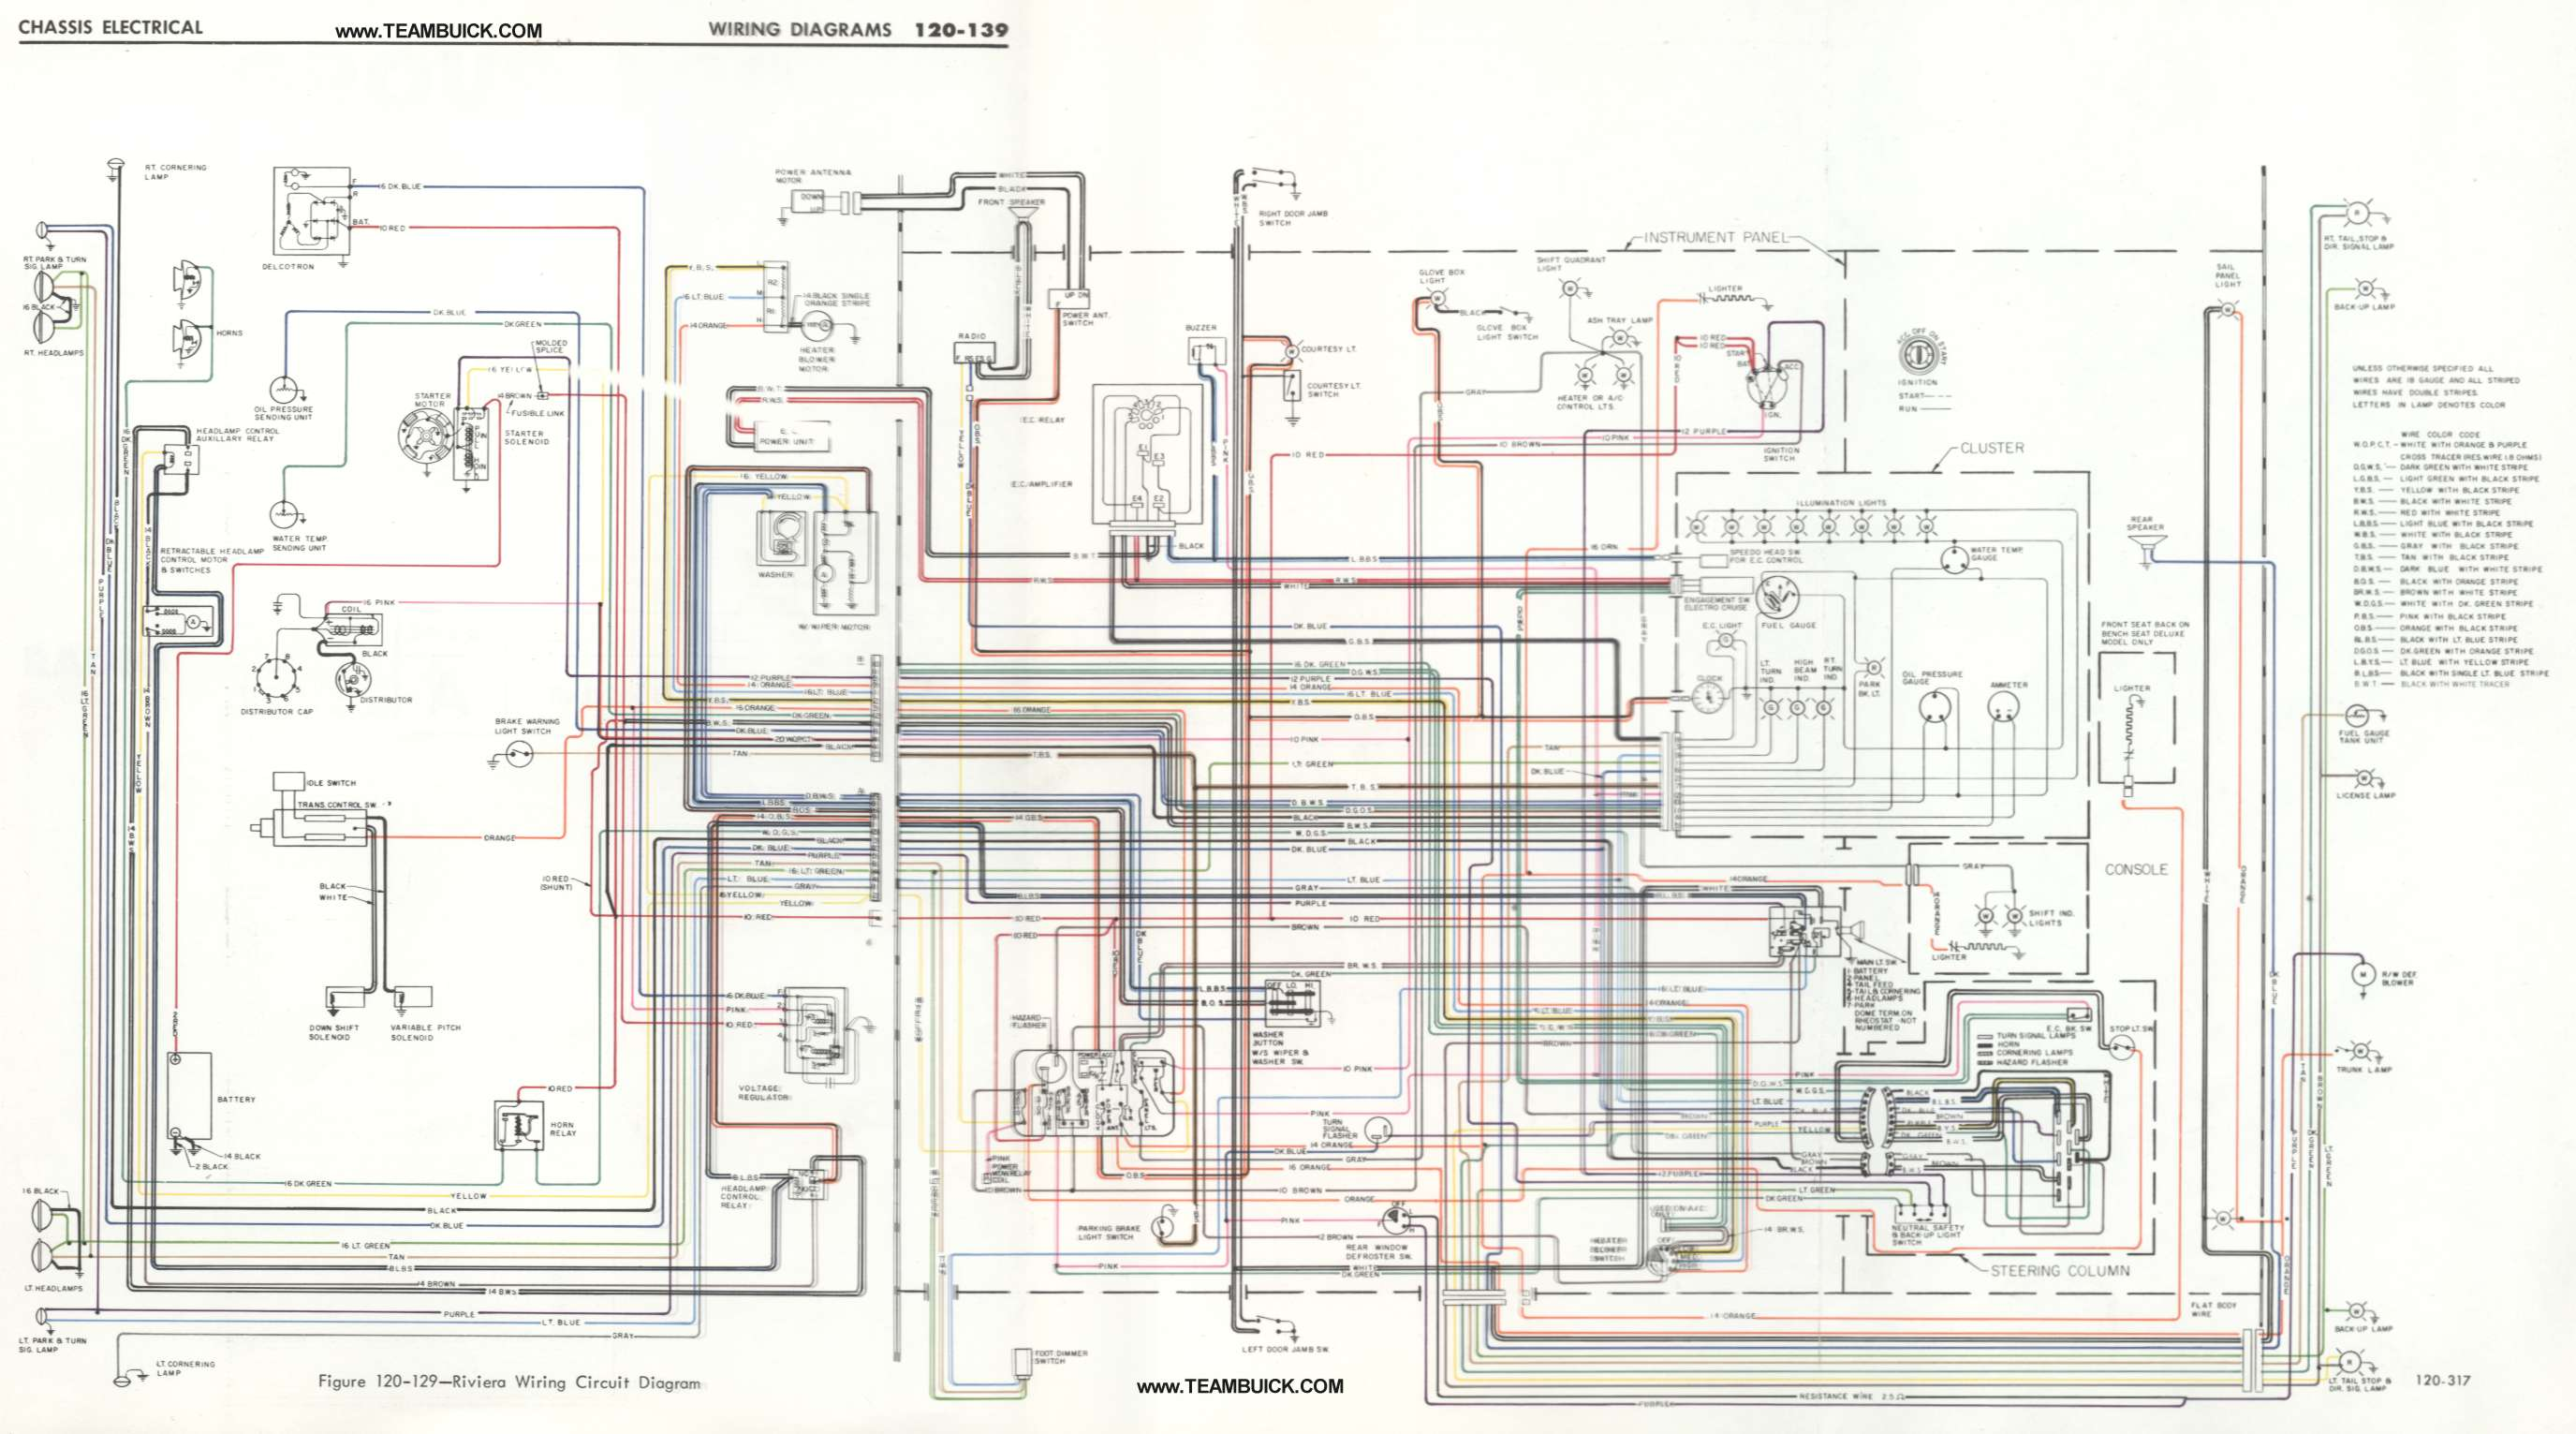 1971 buick skylark wiring diagram index of /reference/years/67/images